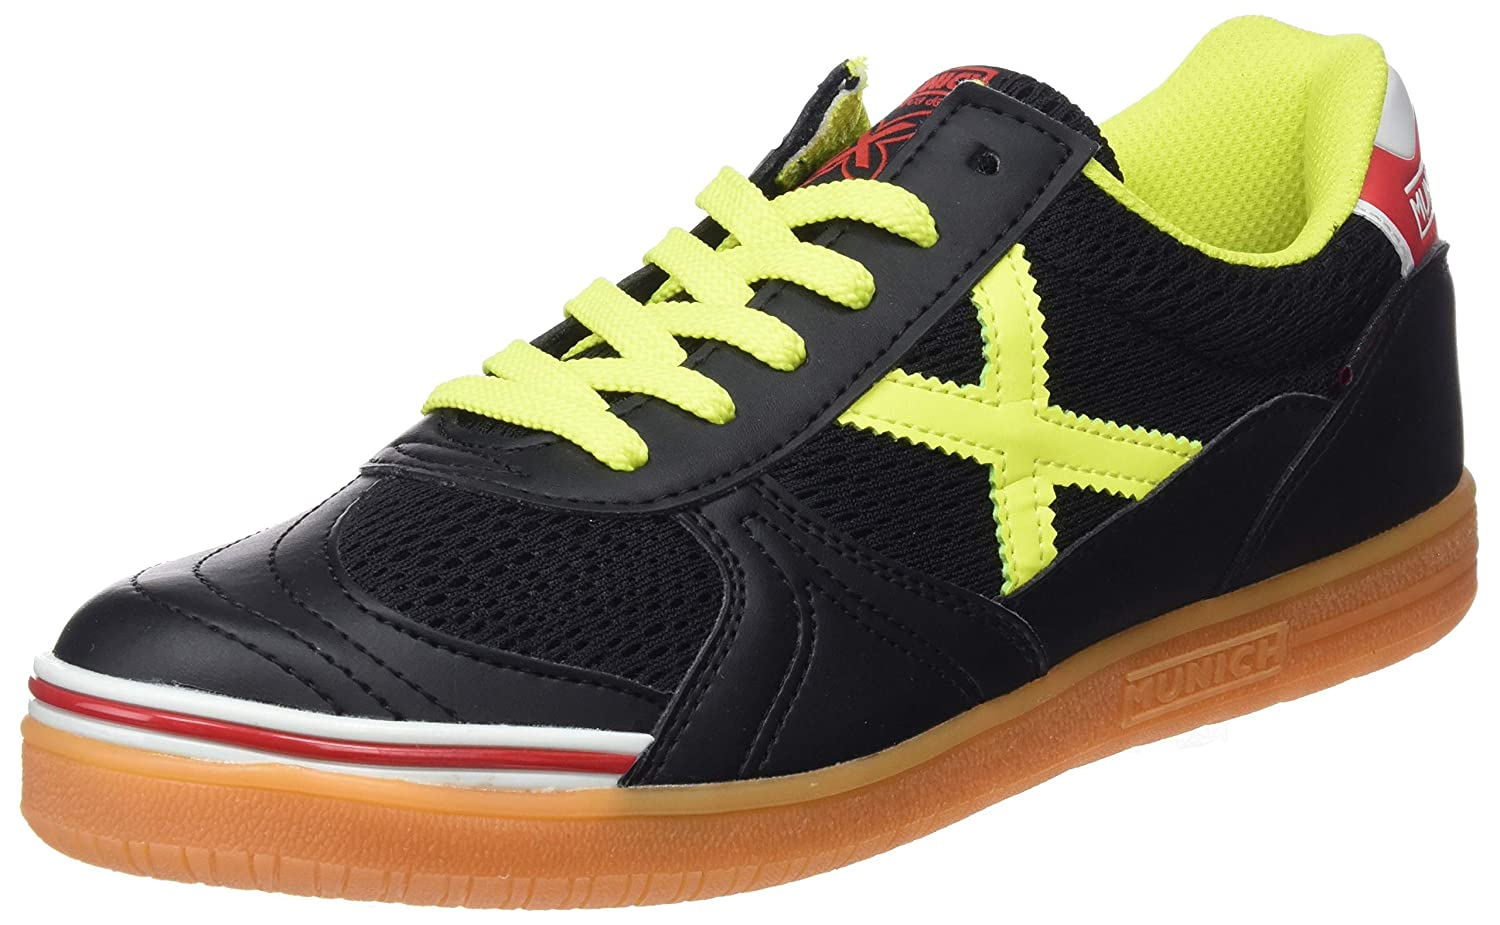 TALLA 43 EU. Munich G-3 Indoor, Zapatillas de Deporte Unisex Adulto